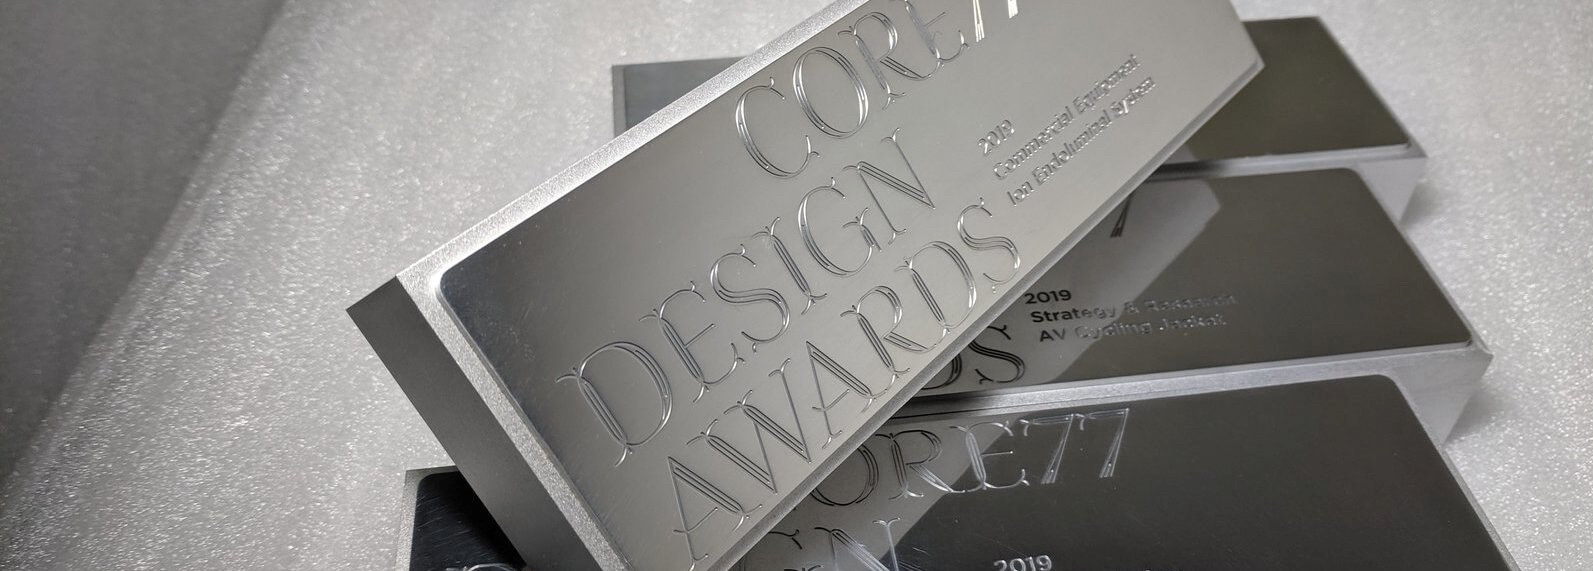 Precision machined trophies for Core77 Design Awards